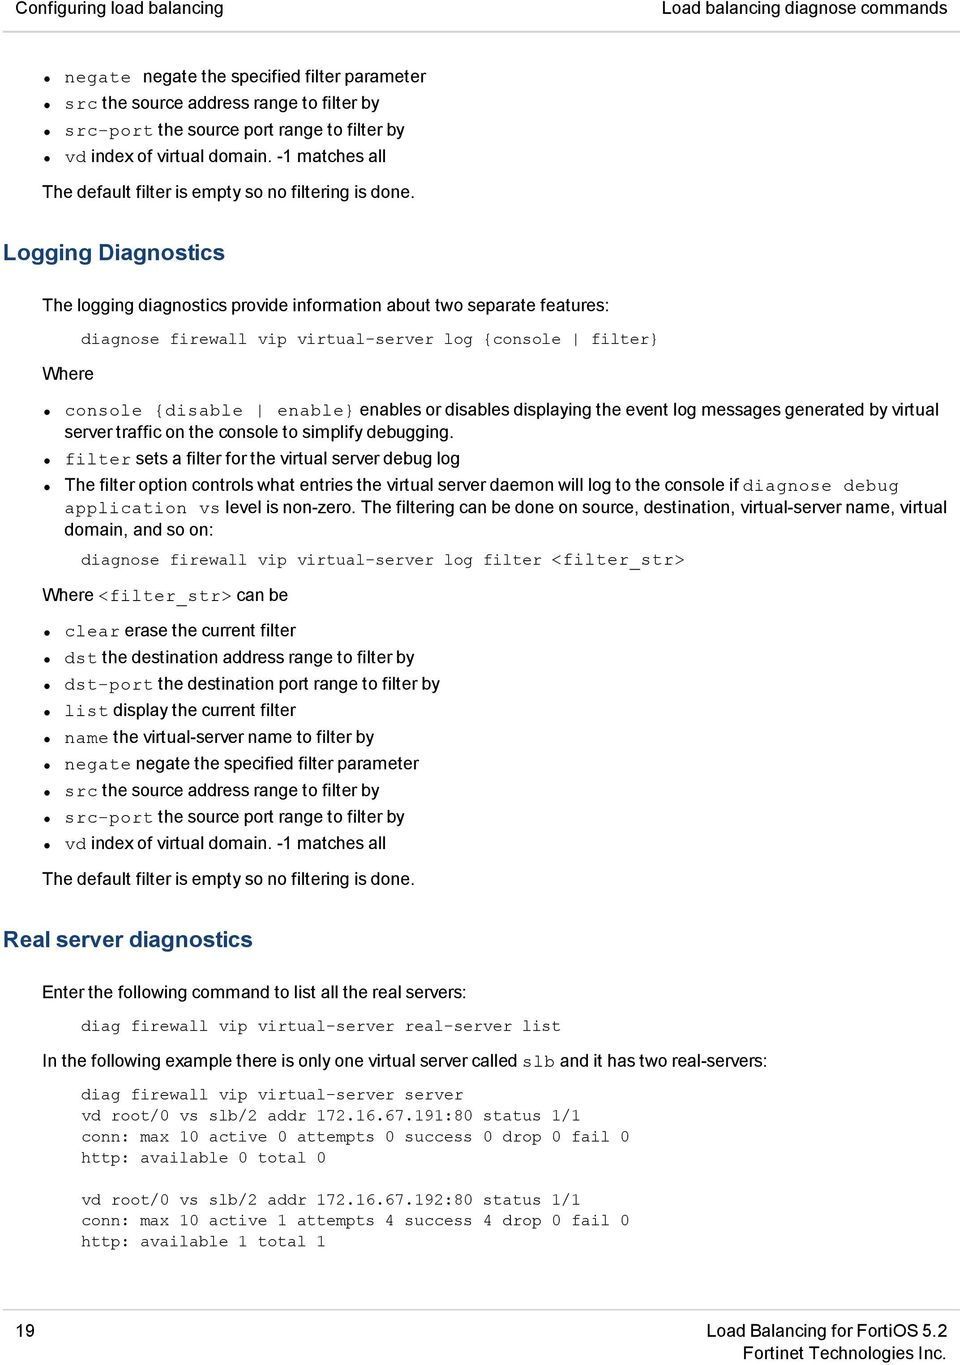 Logging Diagnostics The logging diagnostics provide information about two separate features: Where diagnose firewall vip virtual-server log {console filter} console {disable enable} enables or